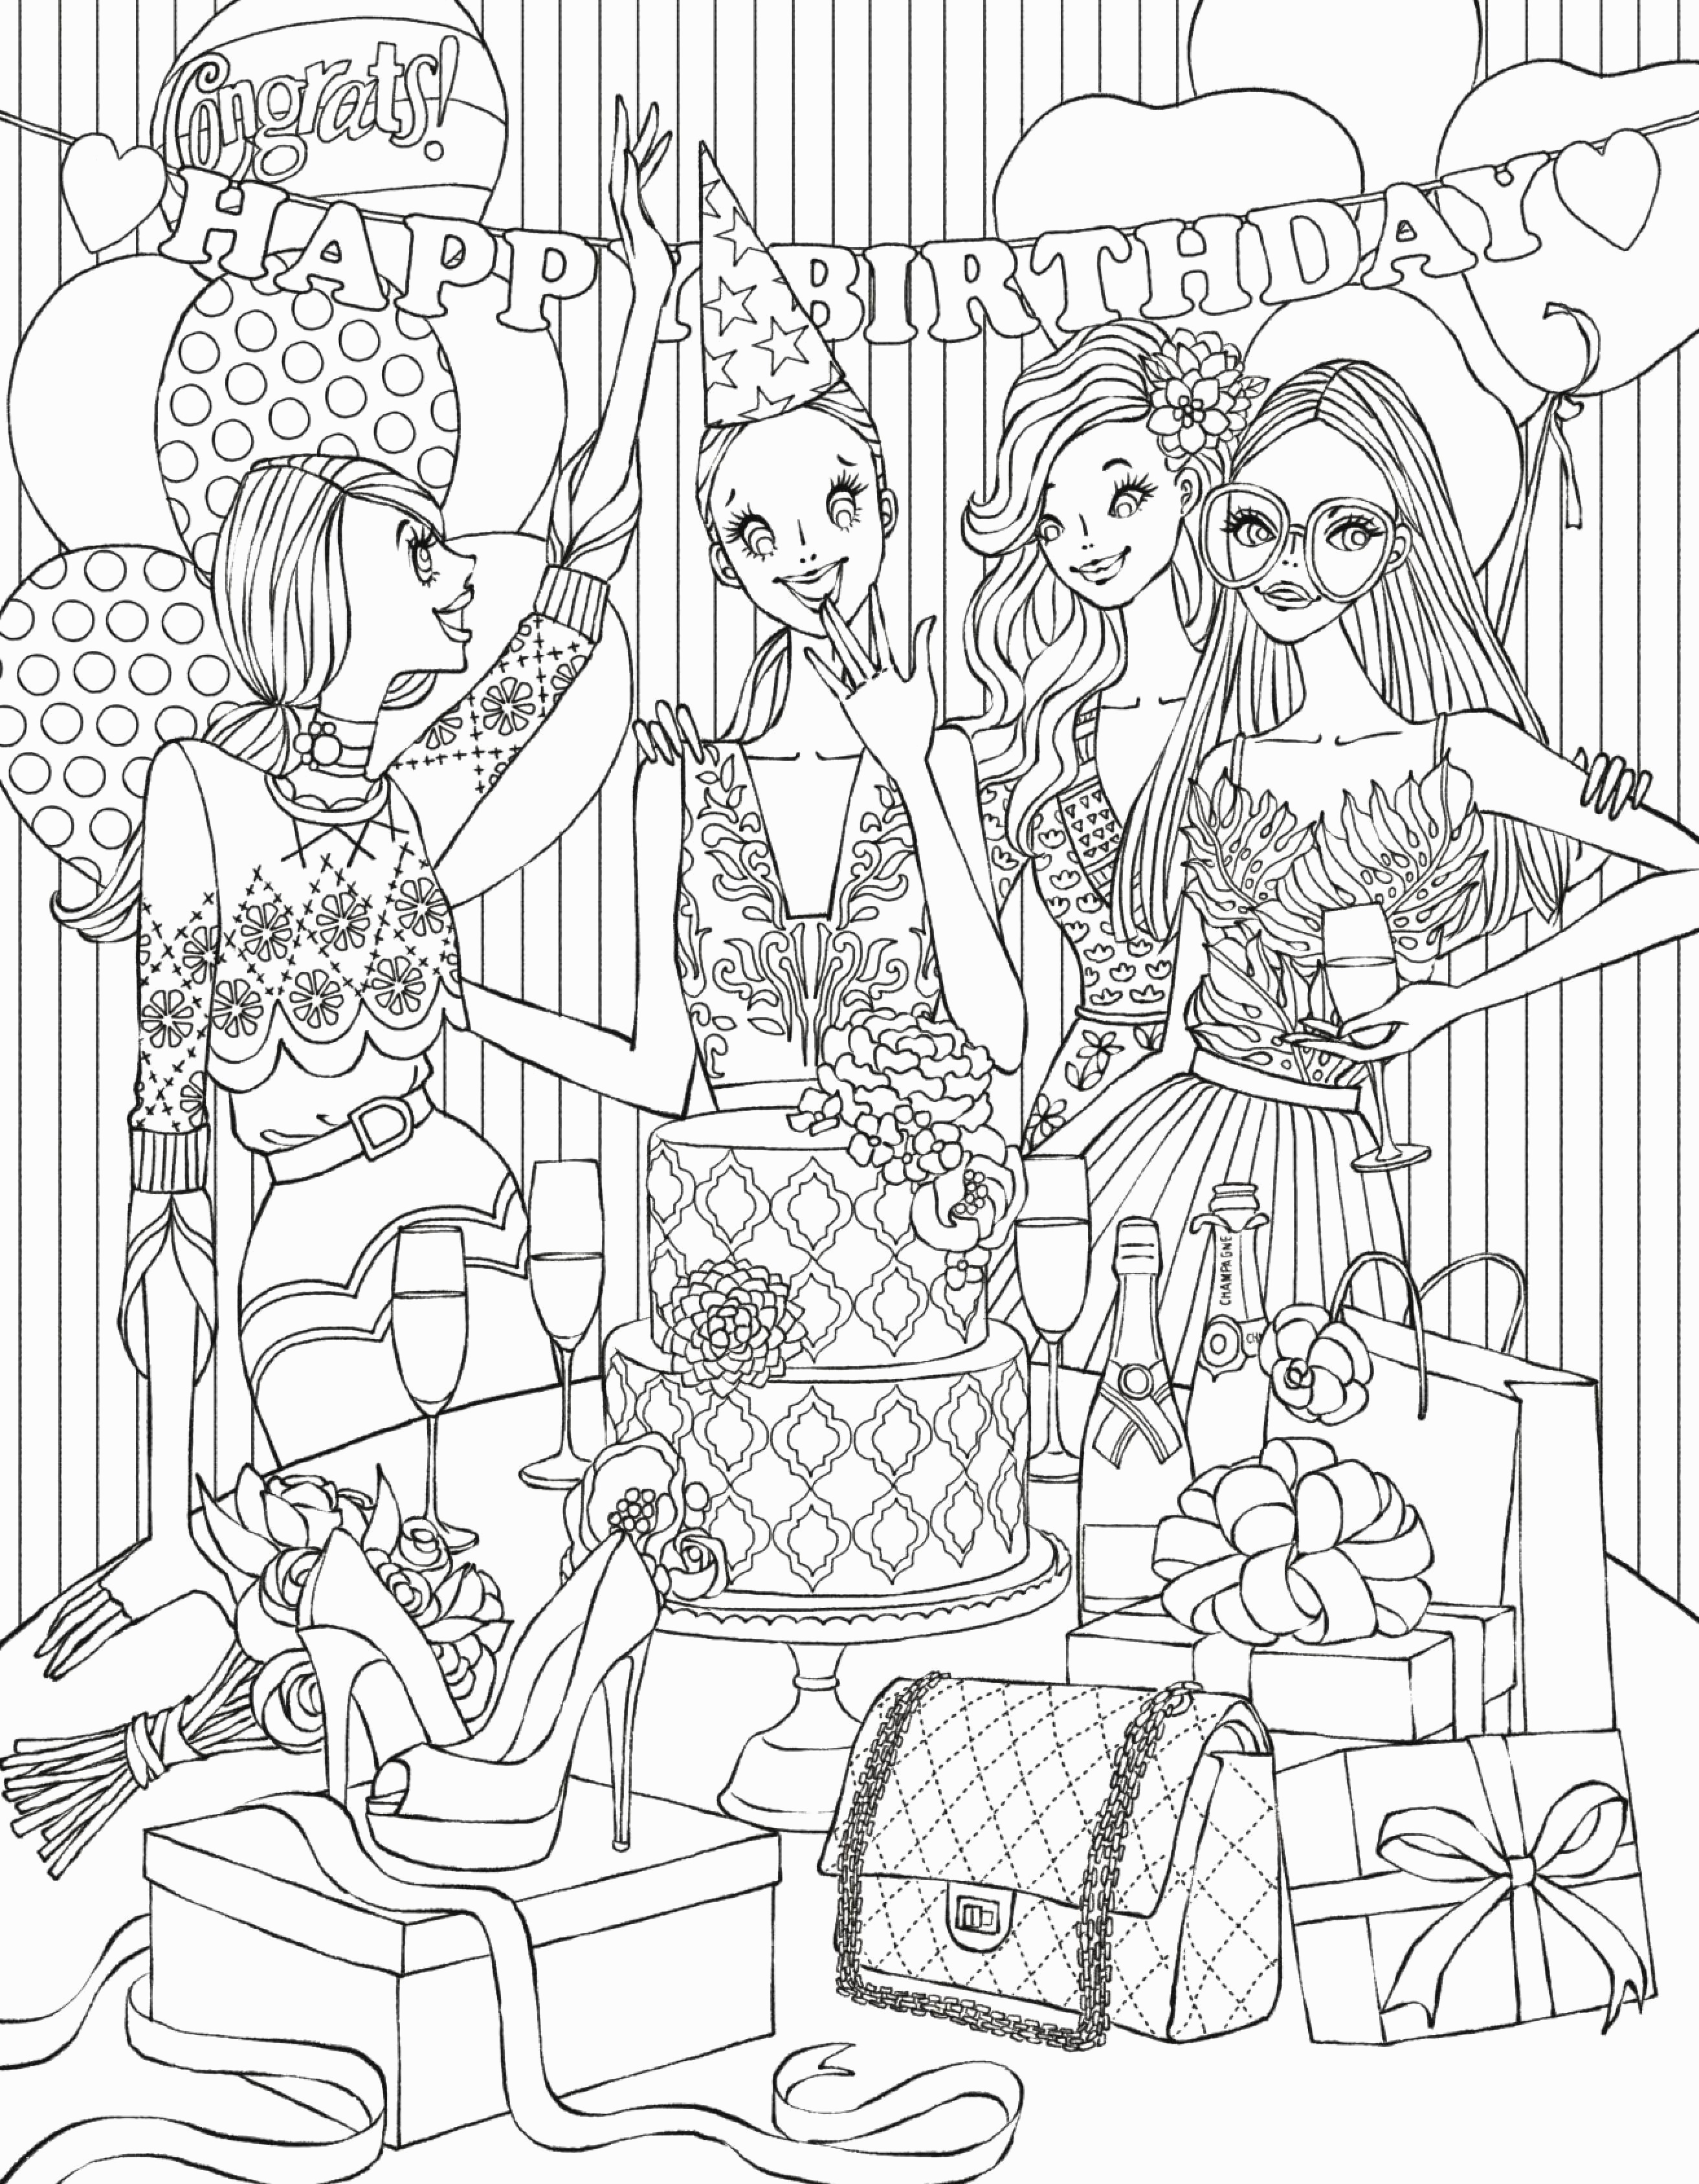 20 Hispanic Heritage Coloring Pages Download - Coloring Sheets